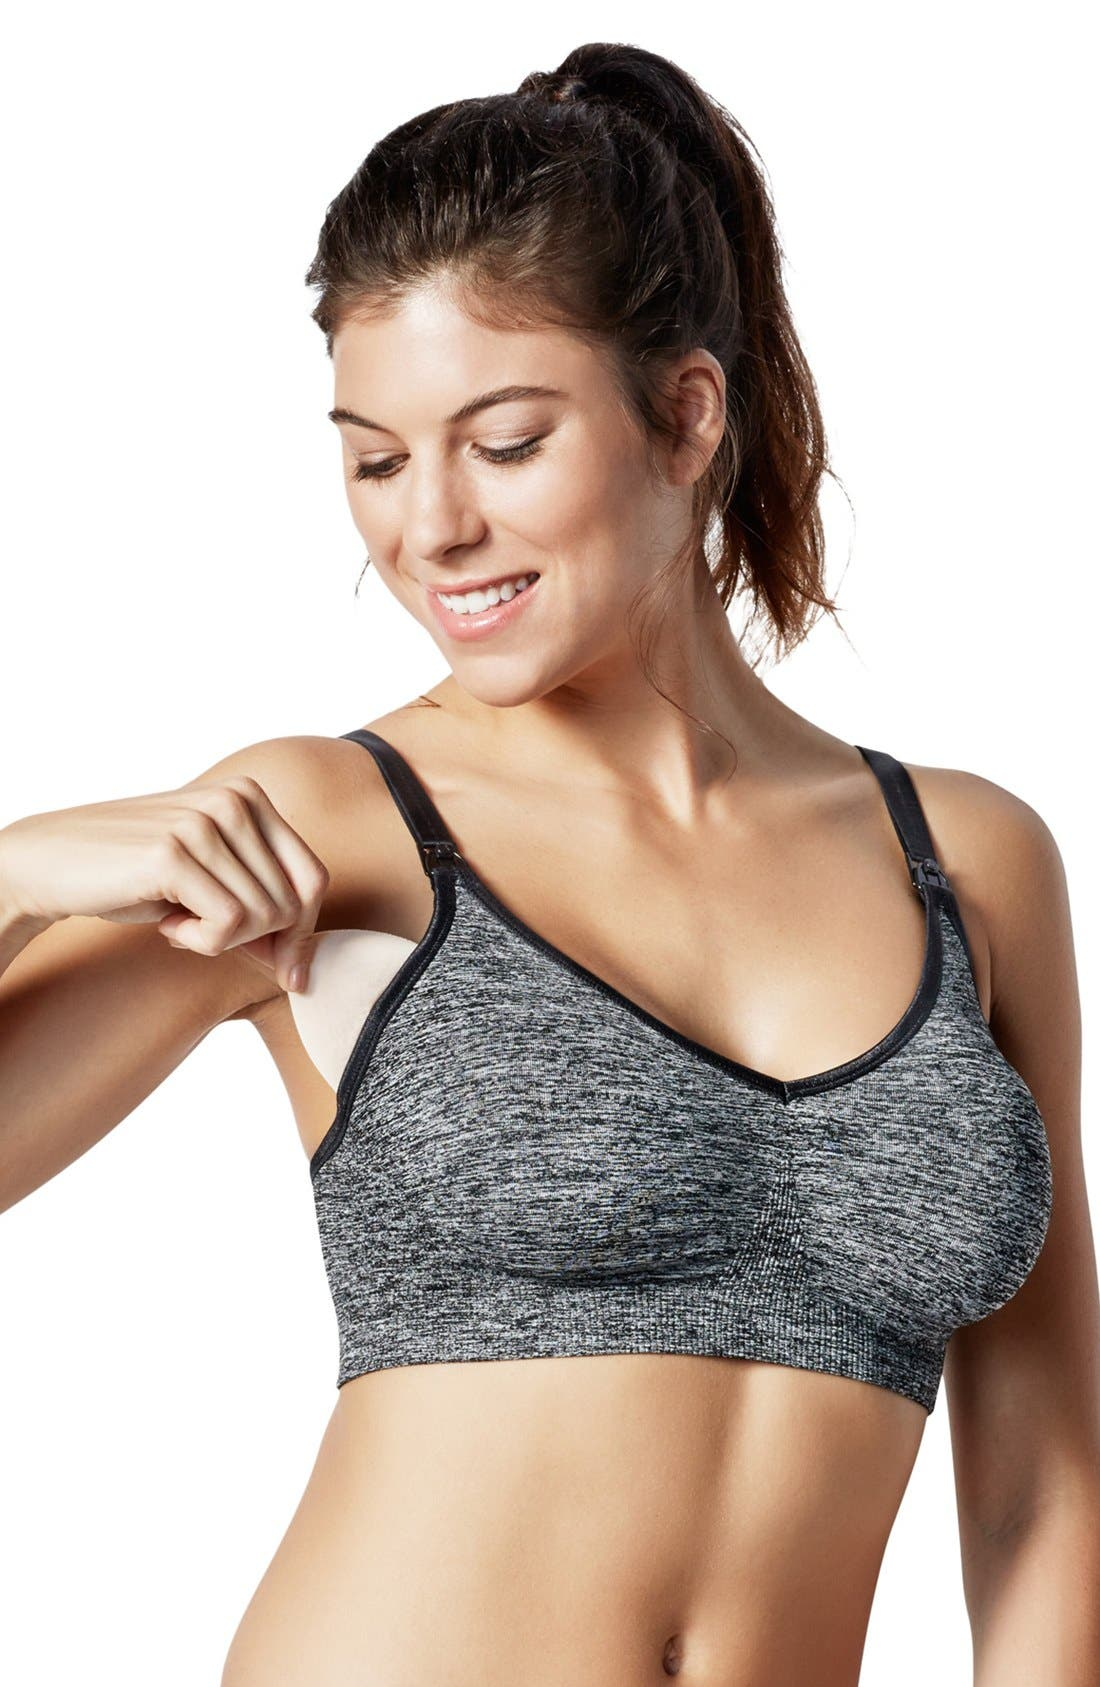 'Body Silk' Seamless Yoga Maternity/Nursing Bra,                             Alternate thumbnail 5, color,                             Charcoal Heather